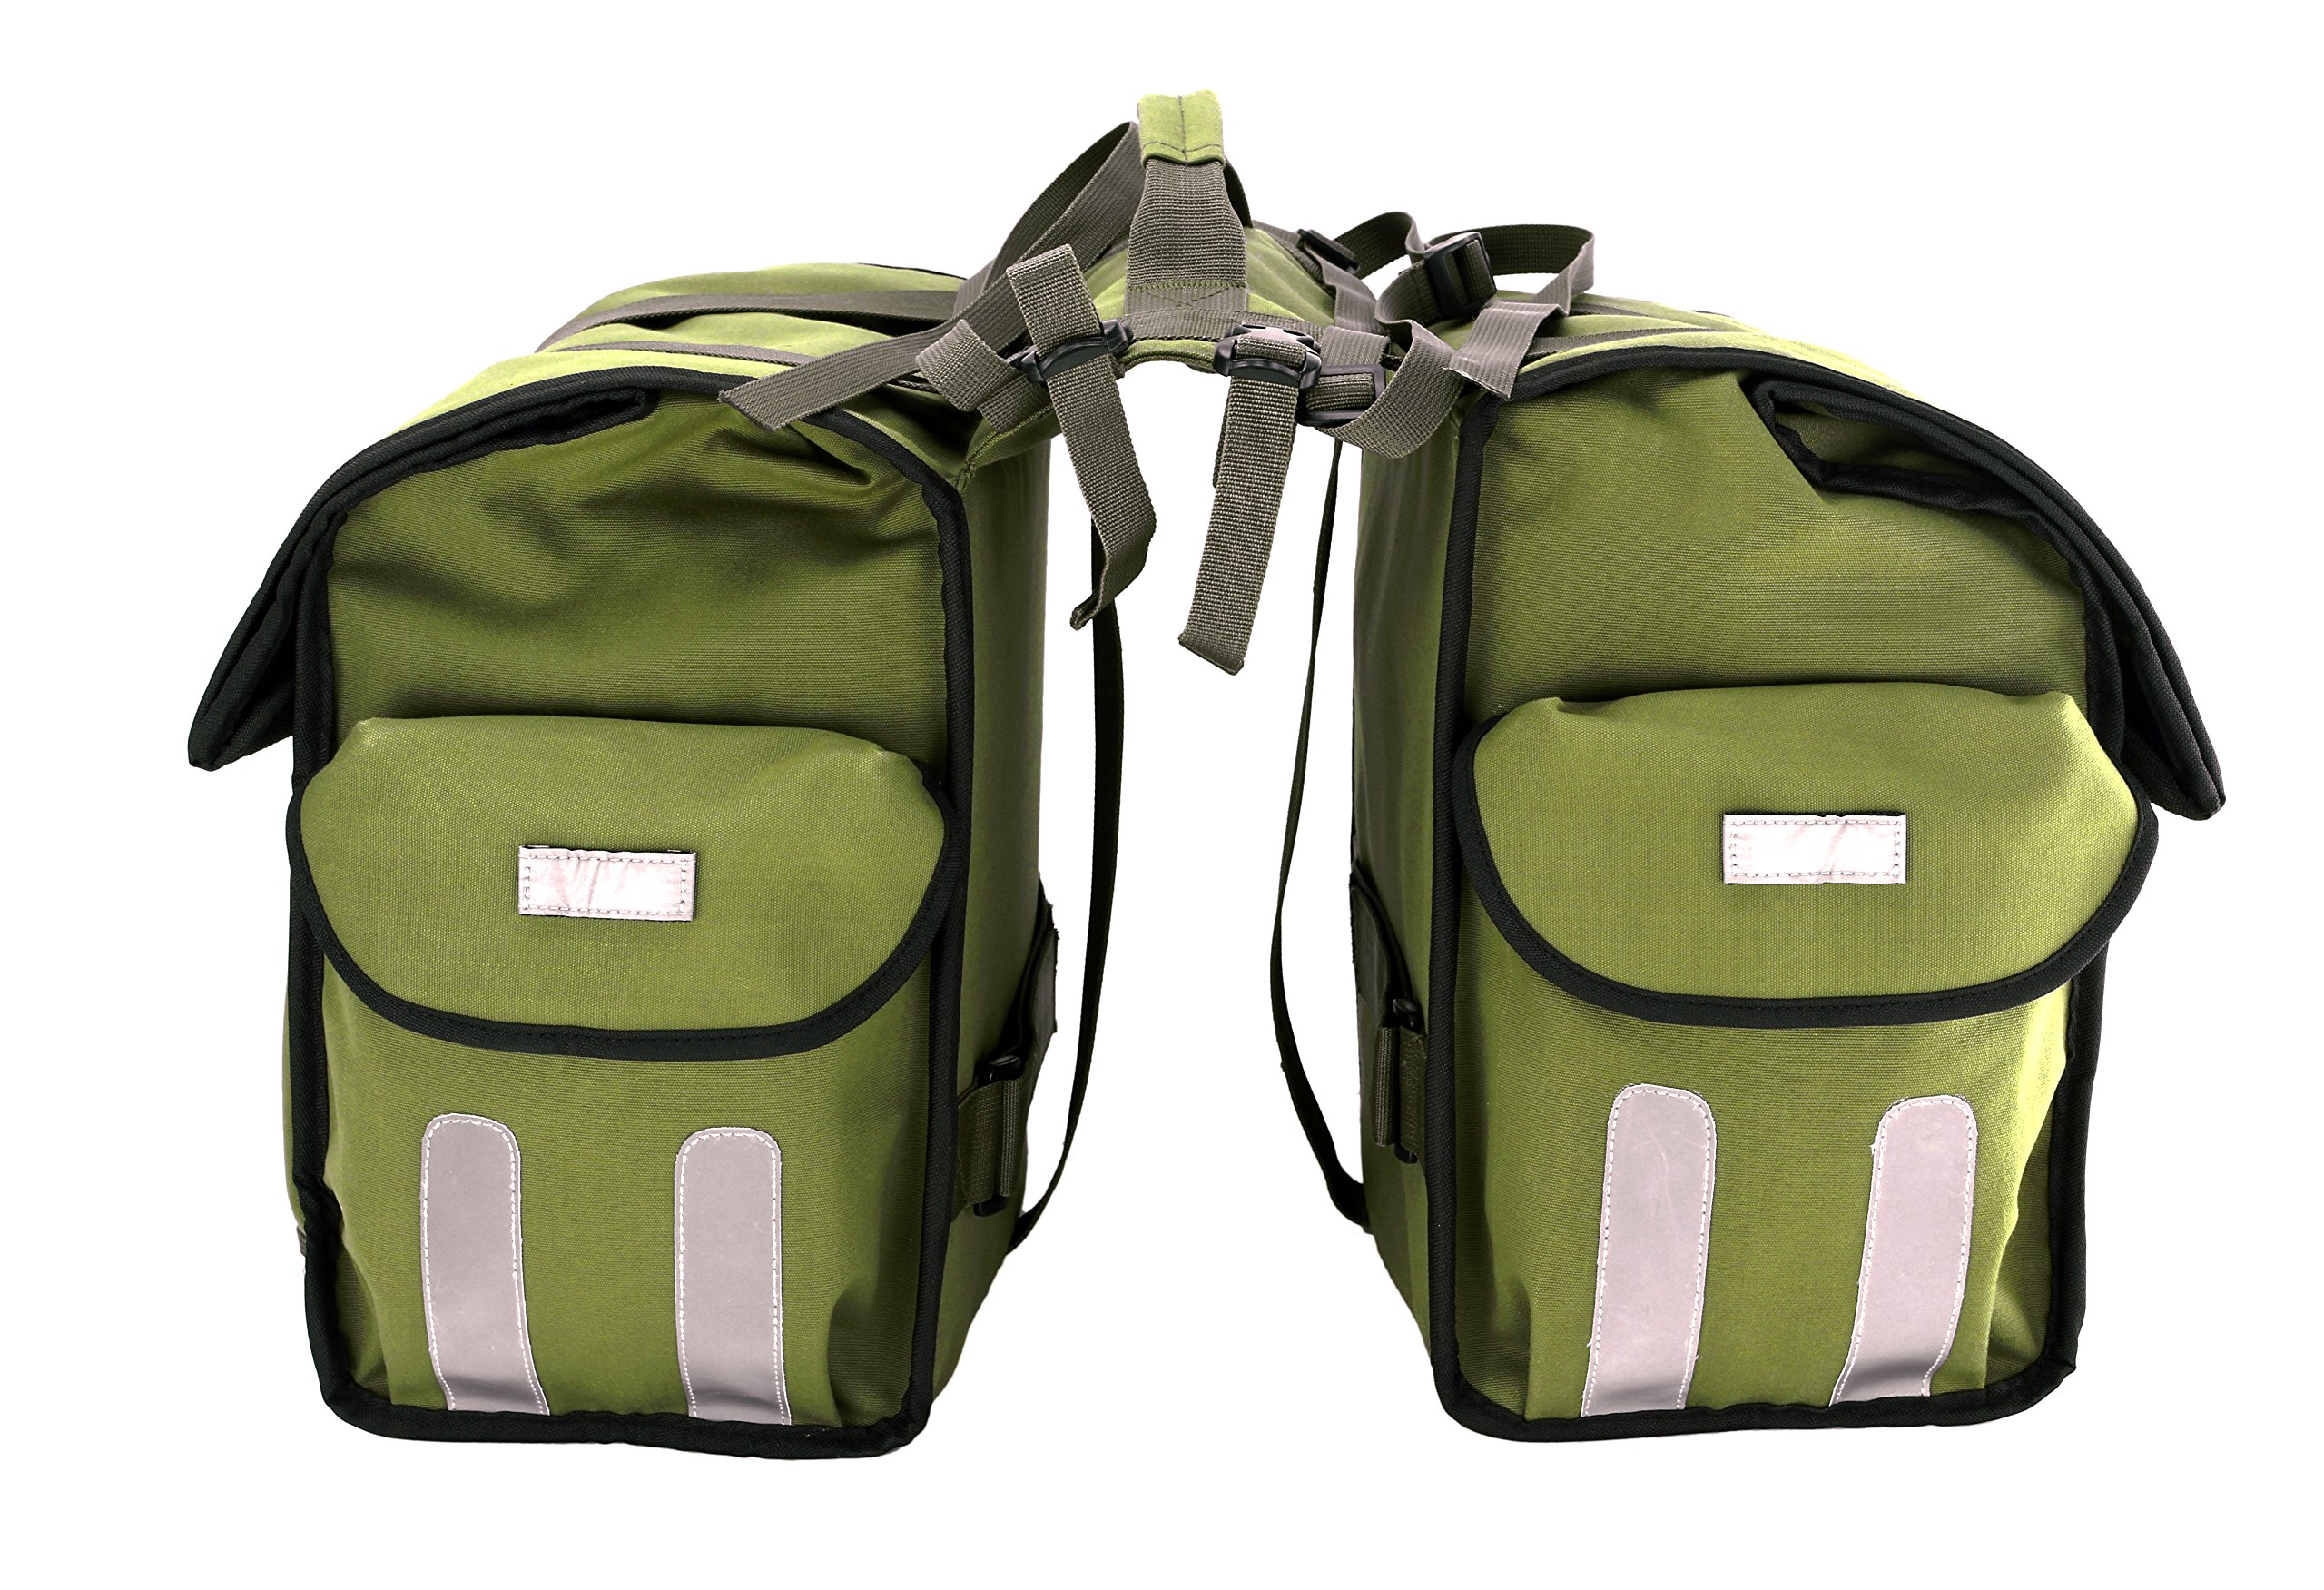 Roswheel 14686 Expedition Series Bike Rear Rack Bag Bicycle Double Panniers Cargo Trunk Bag by Roswheel (Image #3)